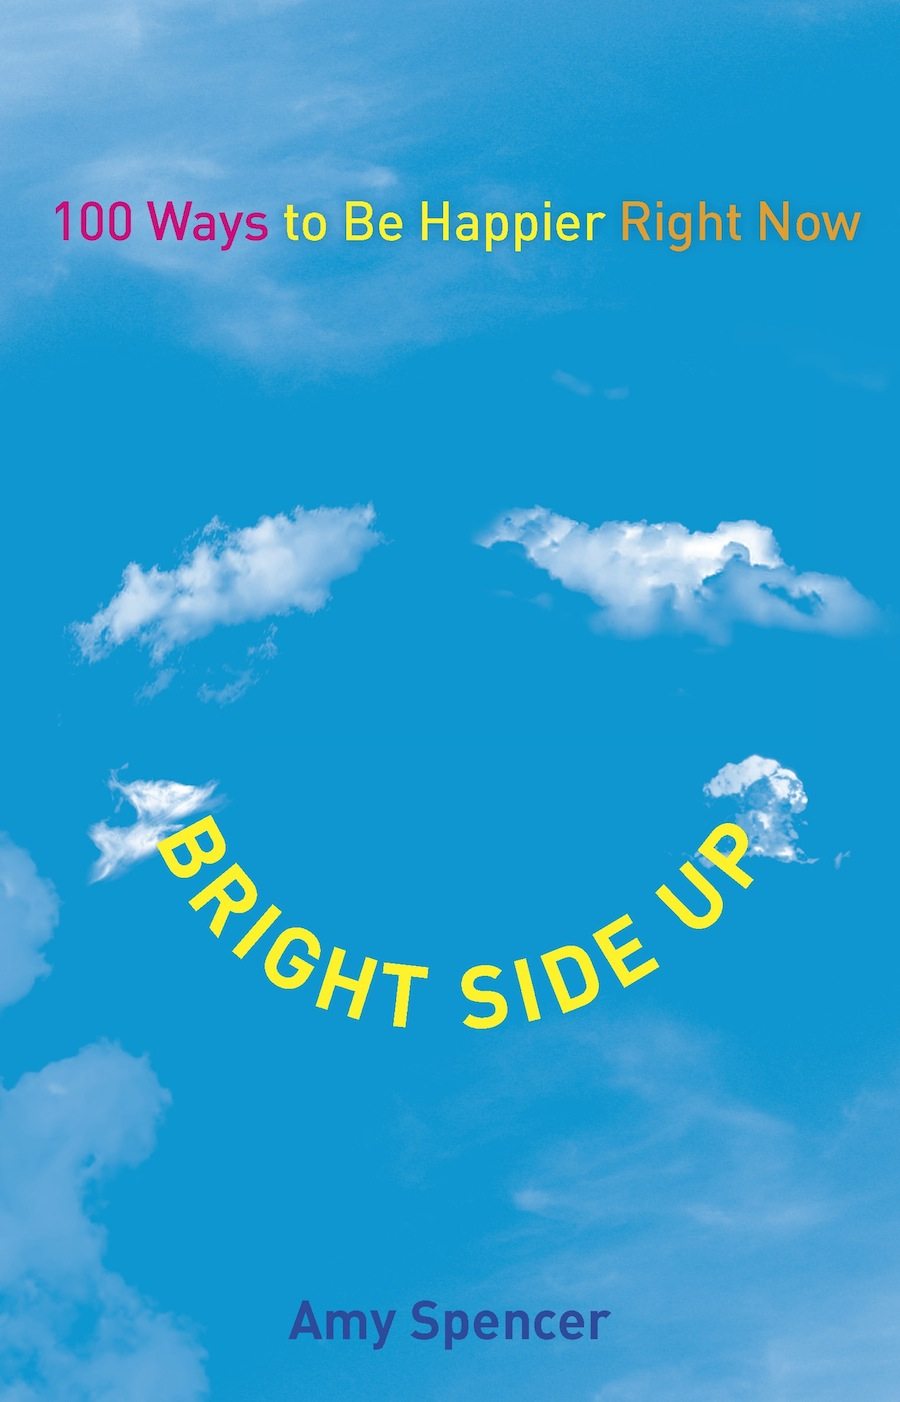 BRIGHT SIDE UP: 100 Ways to Be Happier Right Now (Perigee)